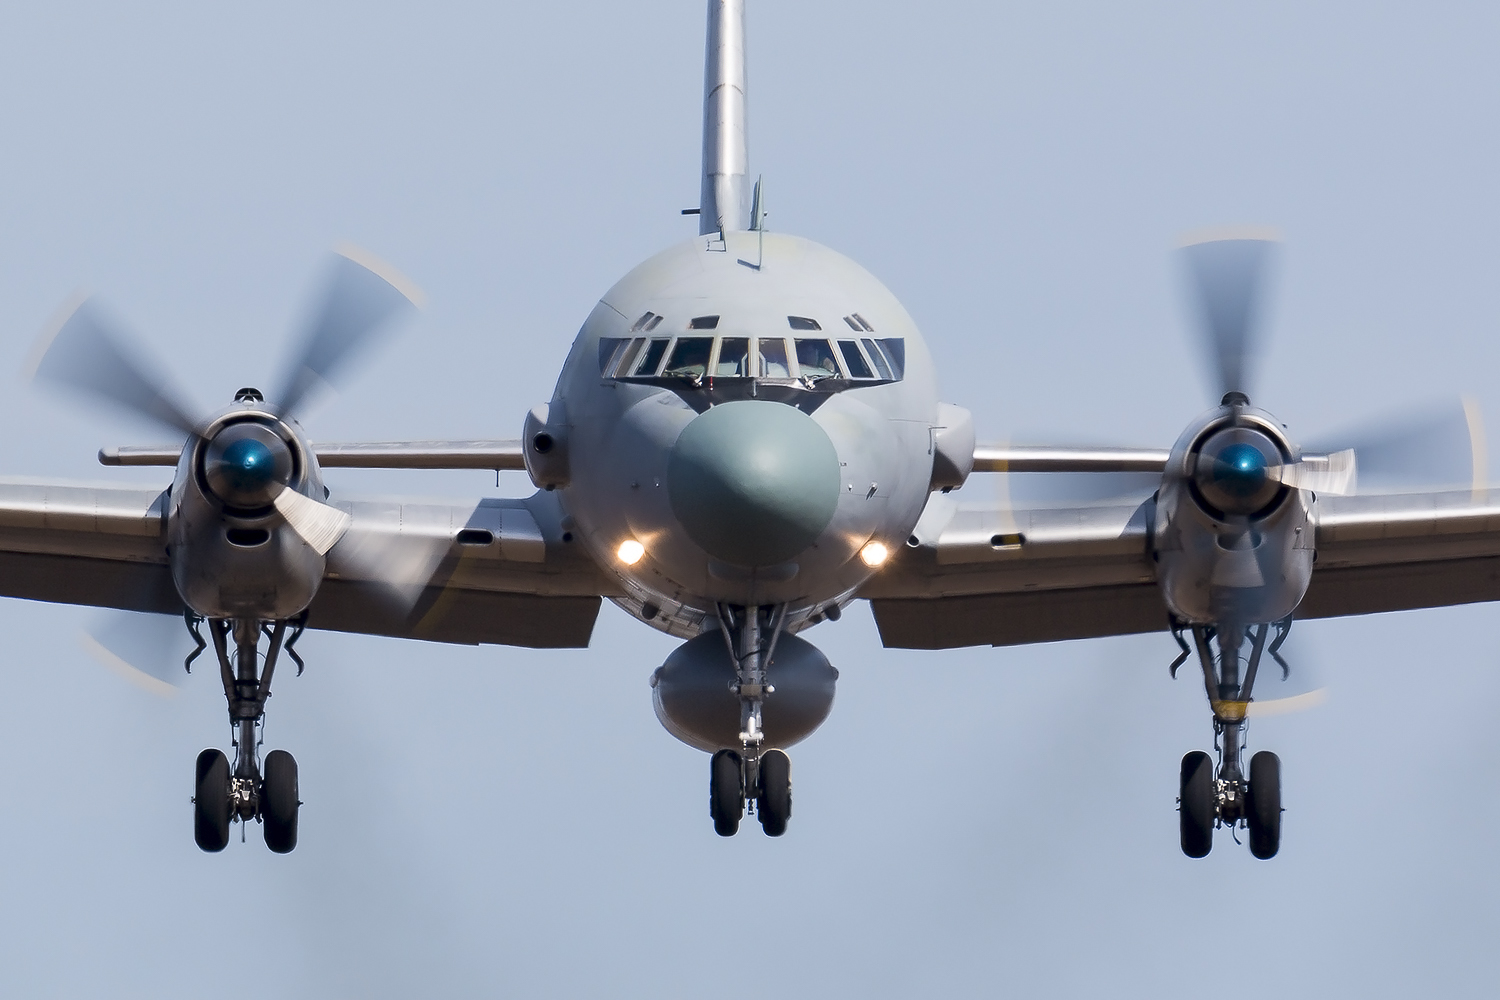 Russian Il-20 aircraft mistakenly shot down by Syrian air defense 80